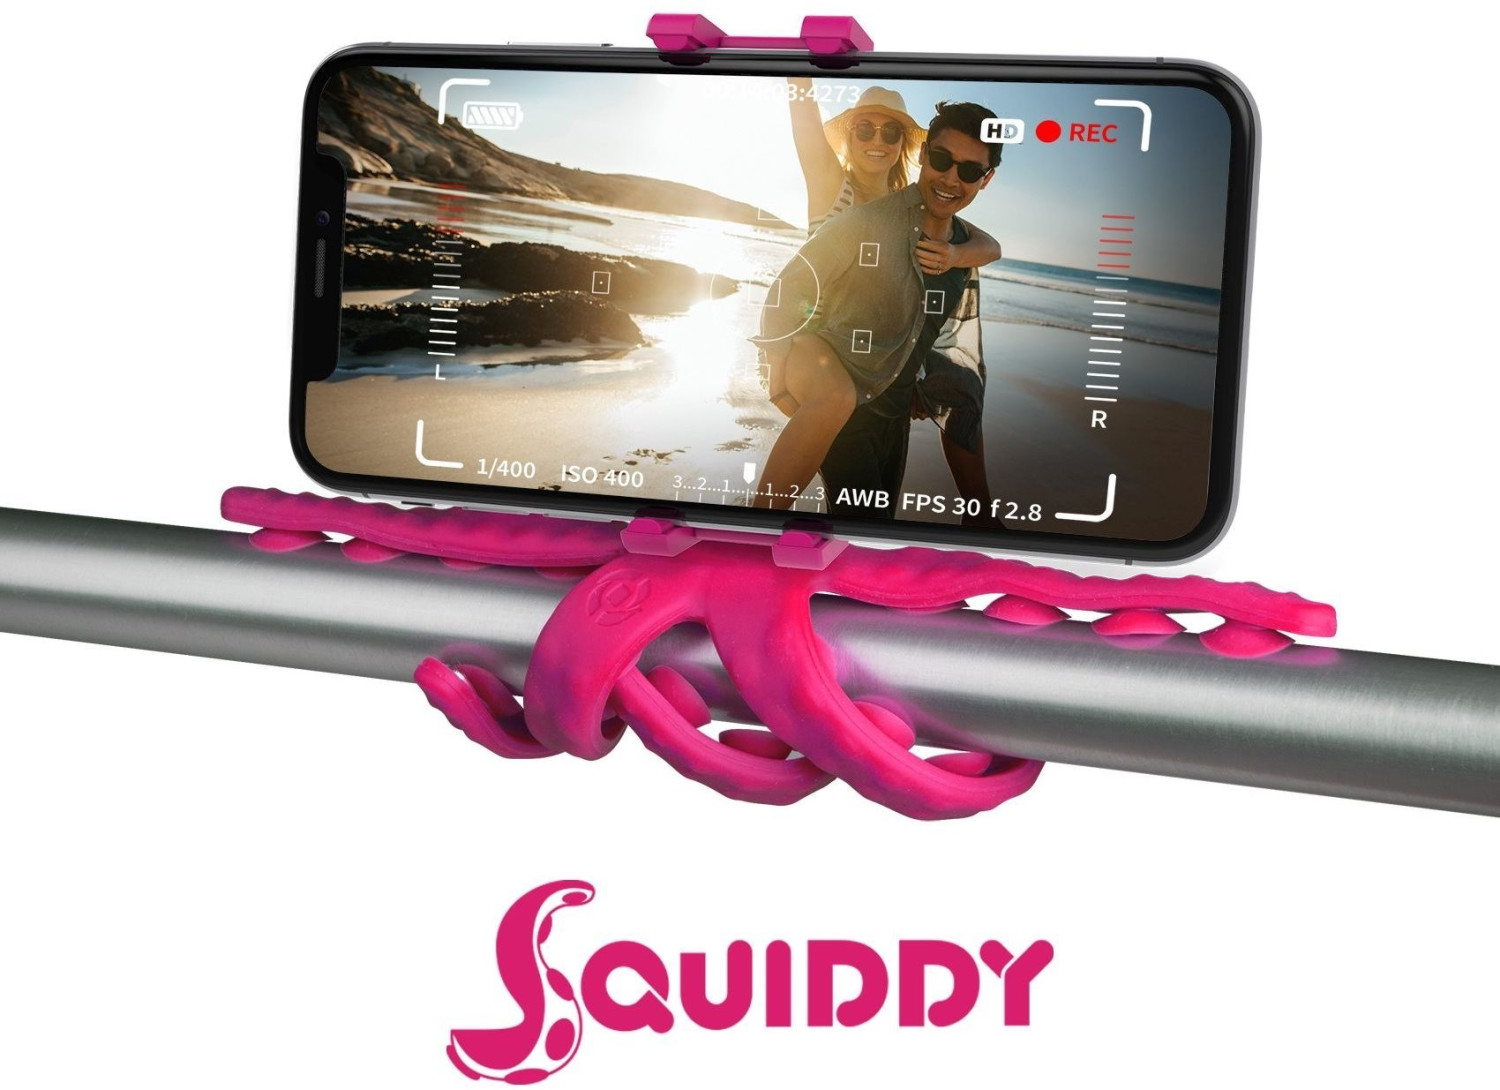 Image of Celly Squiddy